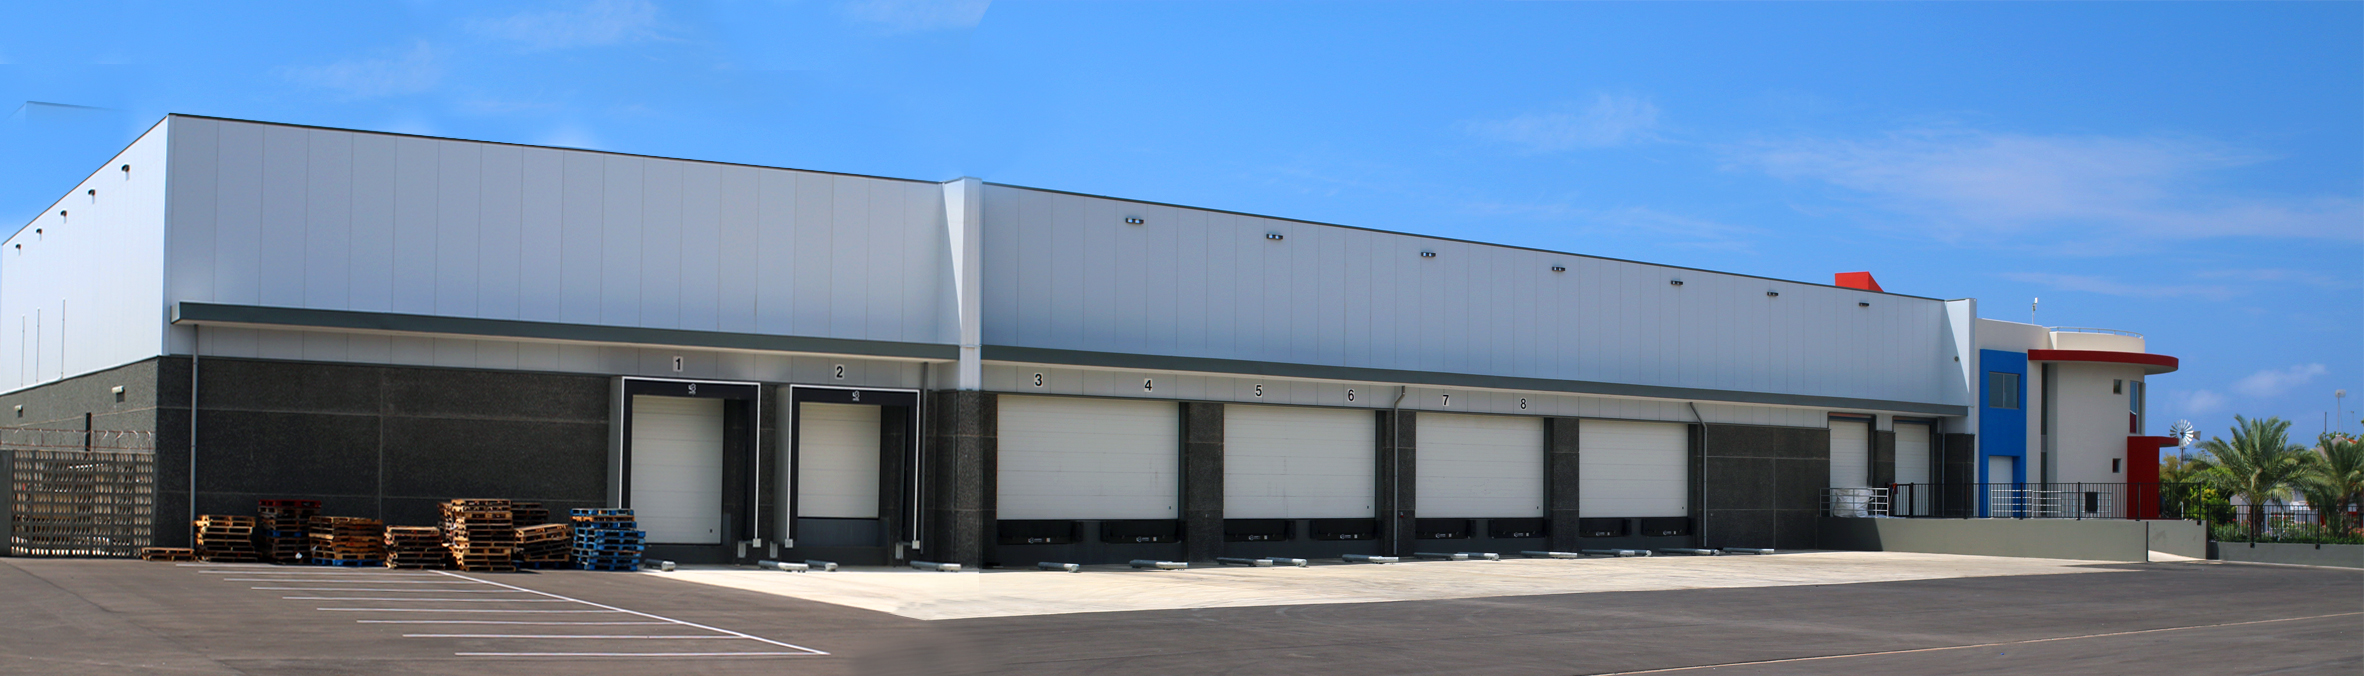 Our main distribution center